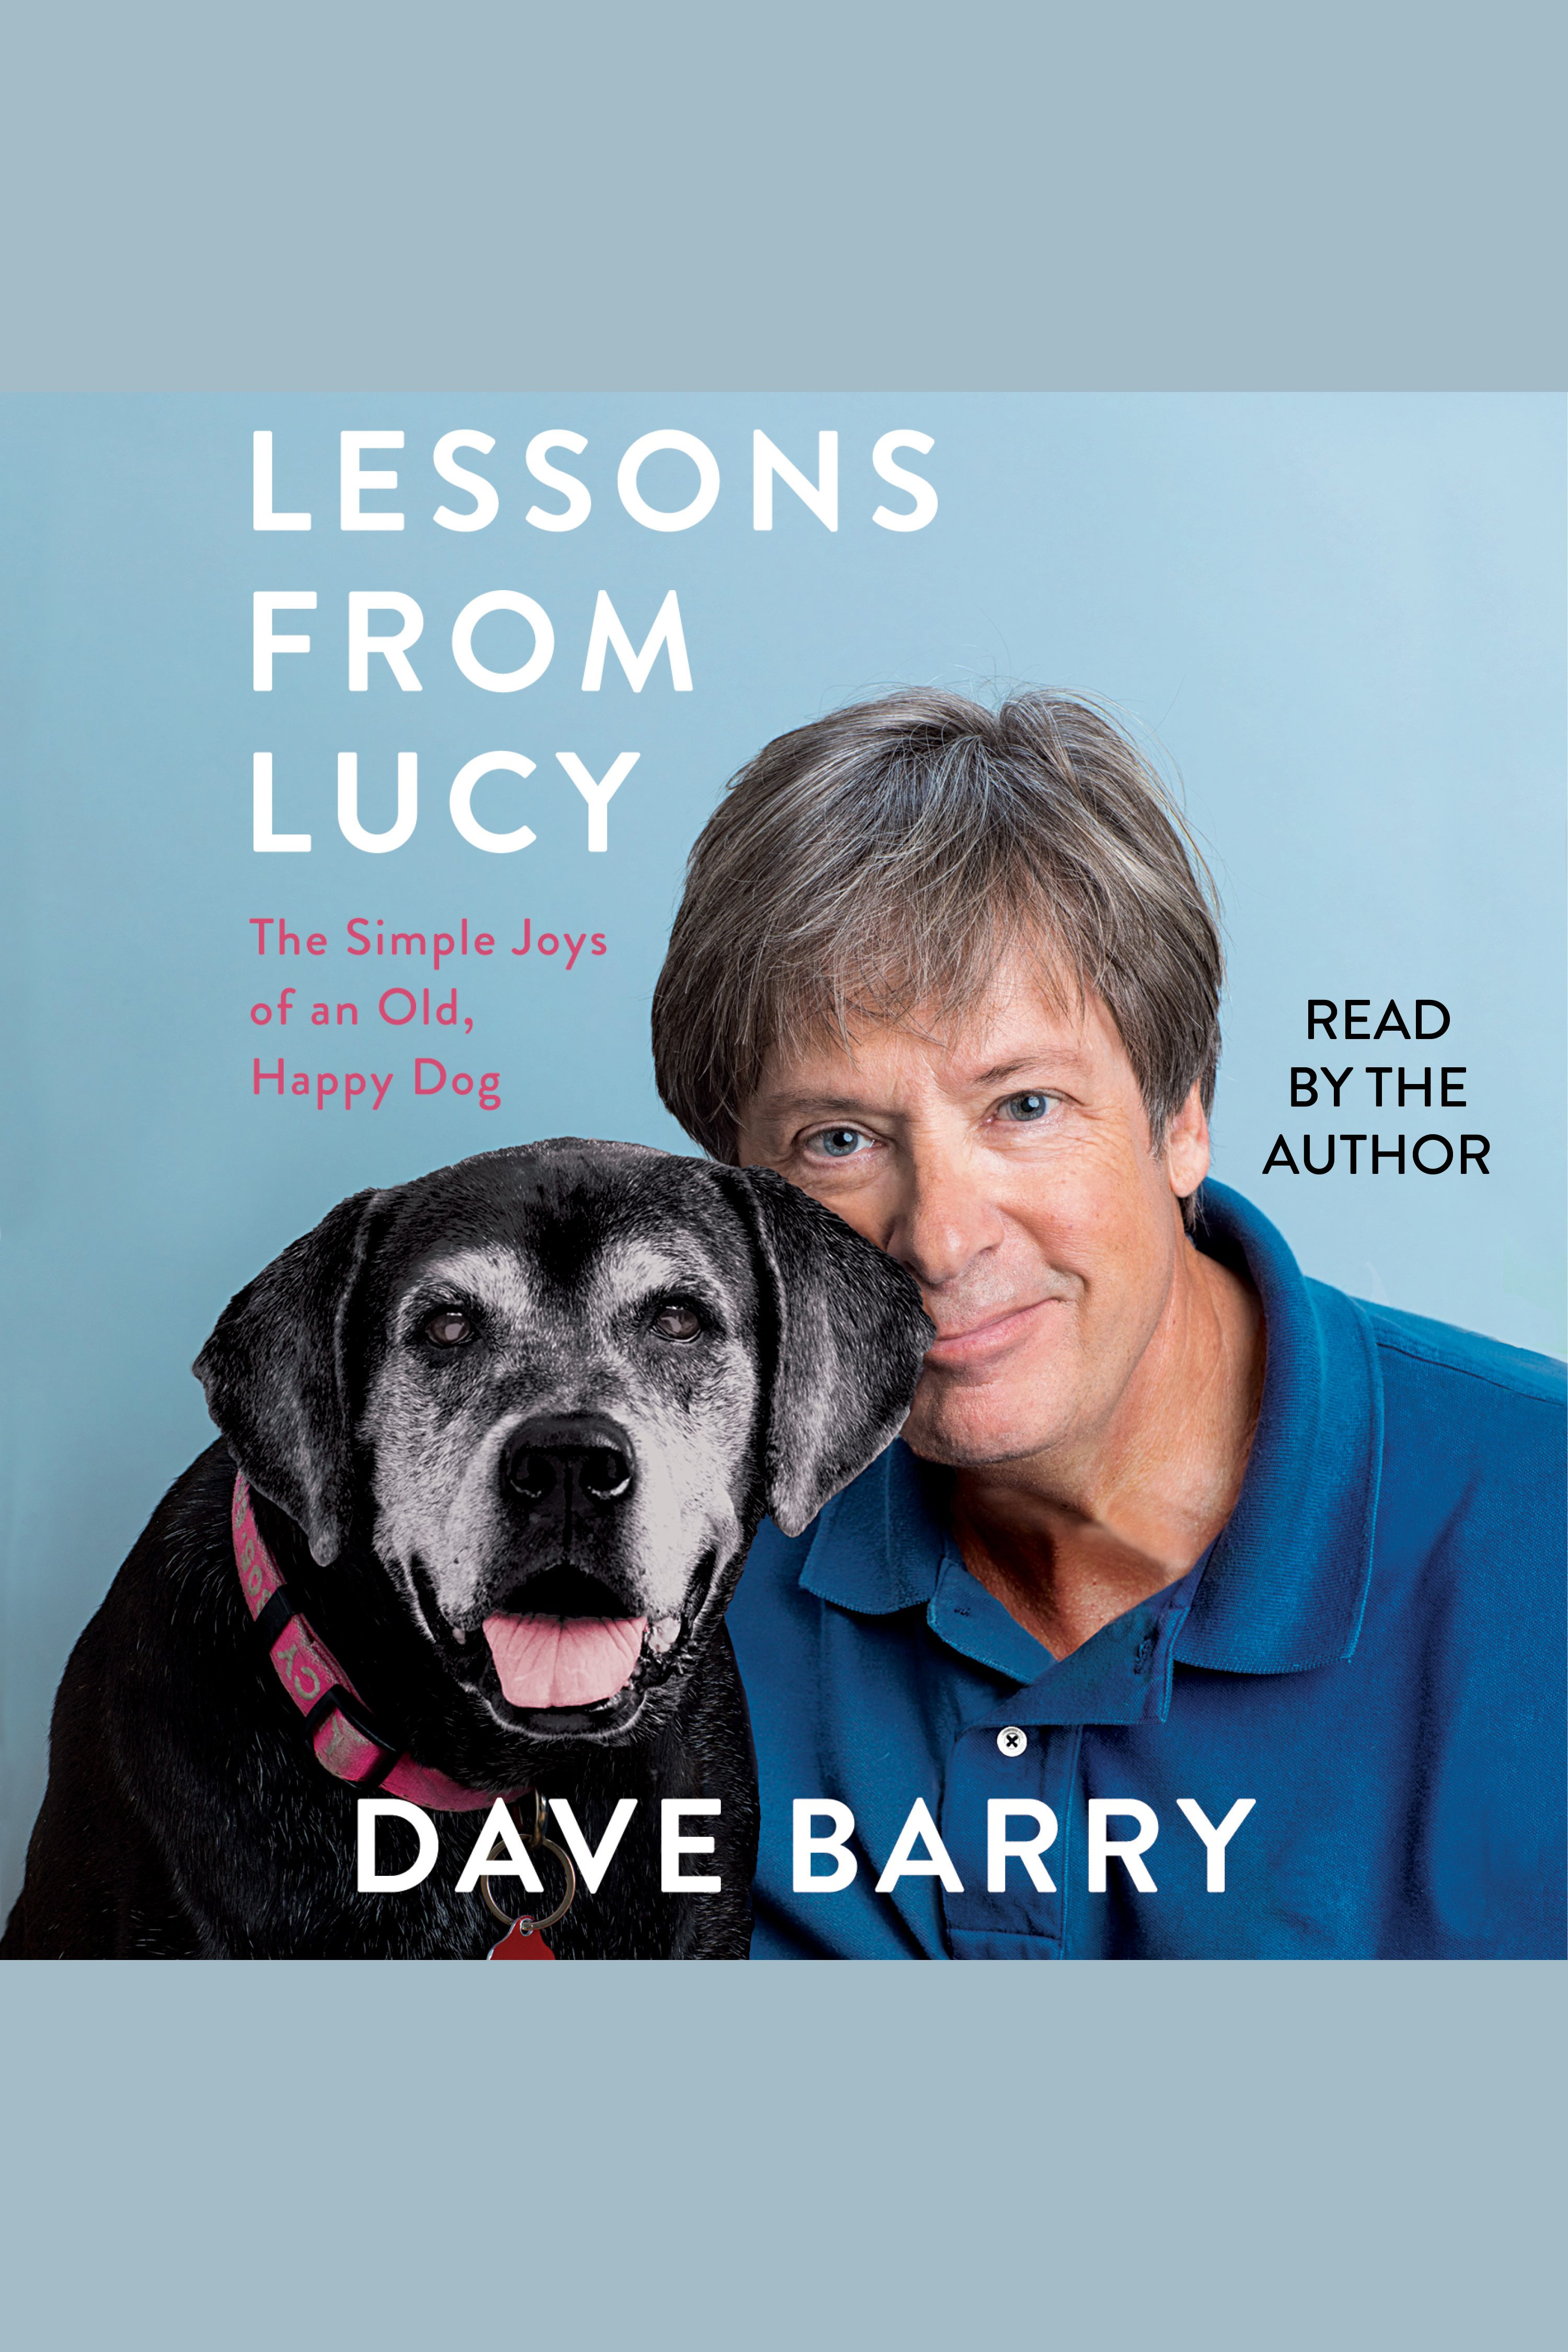 Lessons from Lucy The Simple Joys of an Old, Happy Dog